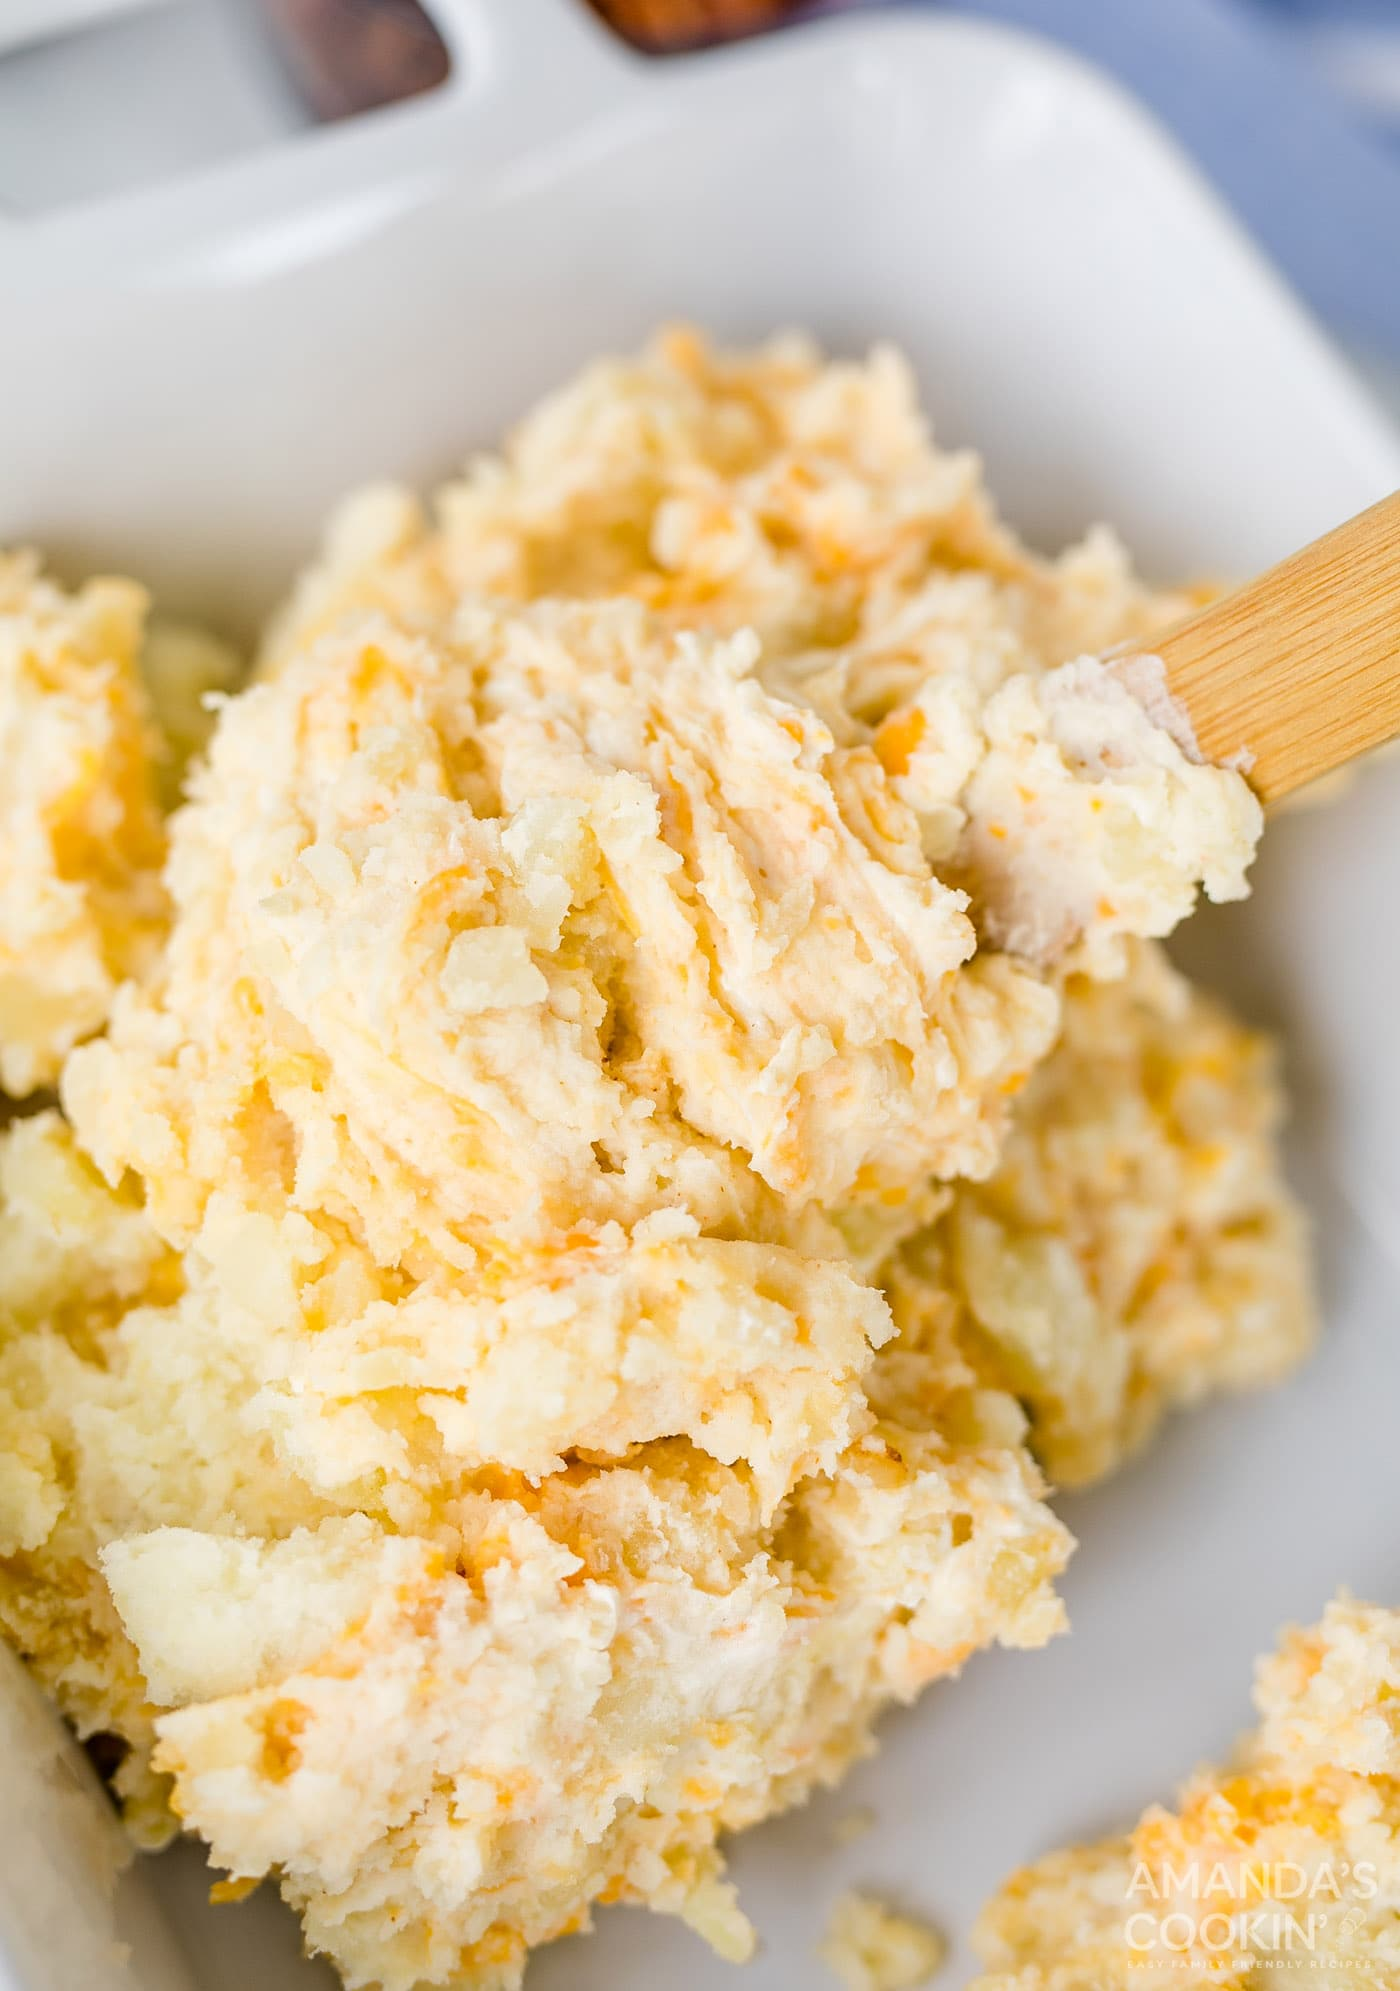 scooping mashed potatoes into a casserole dish